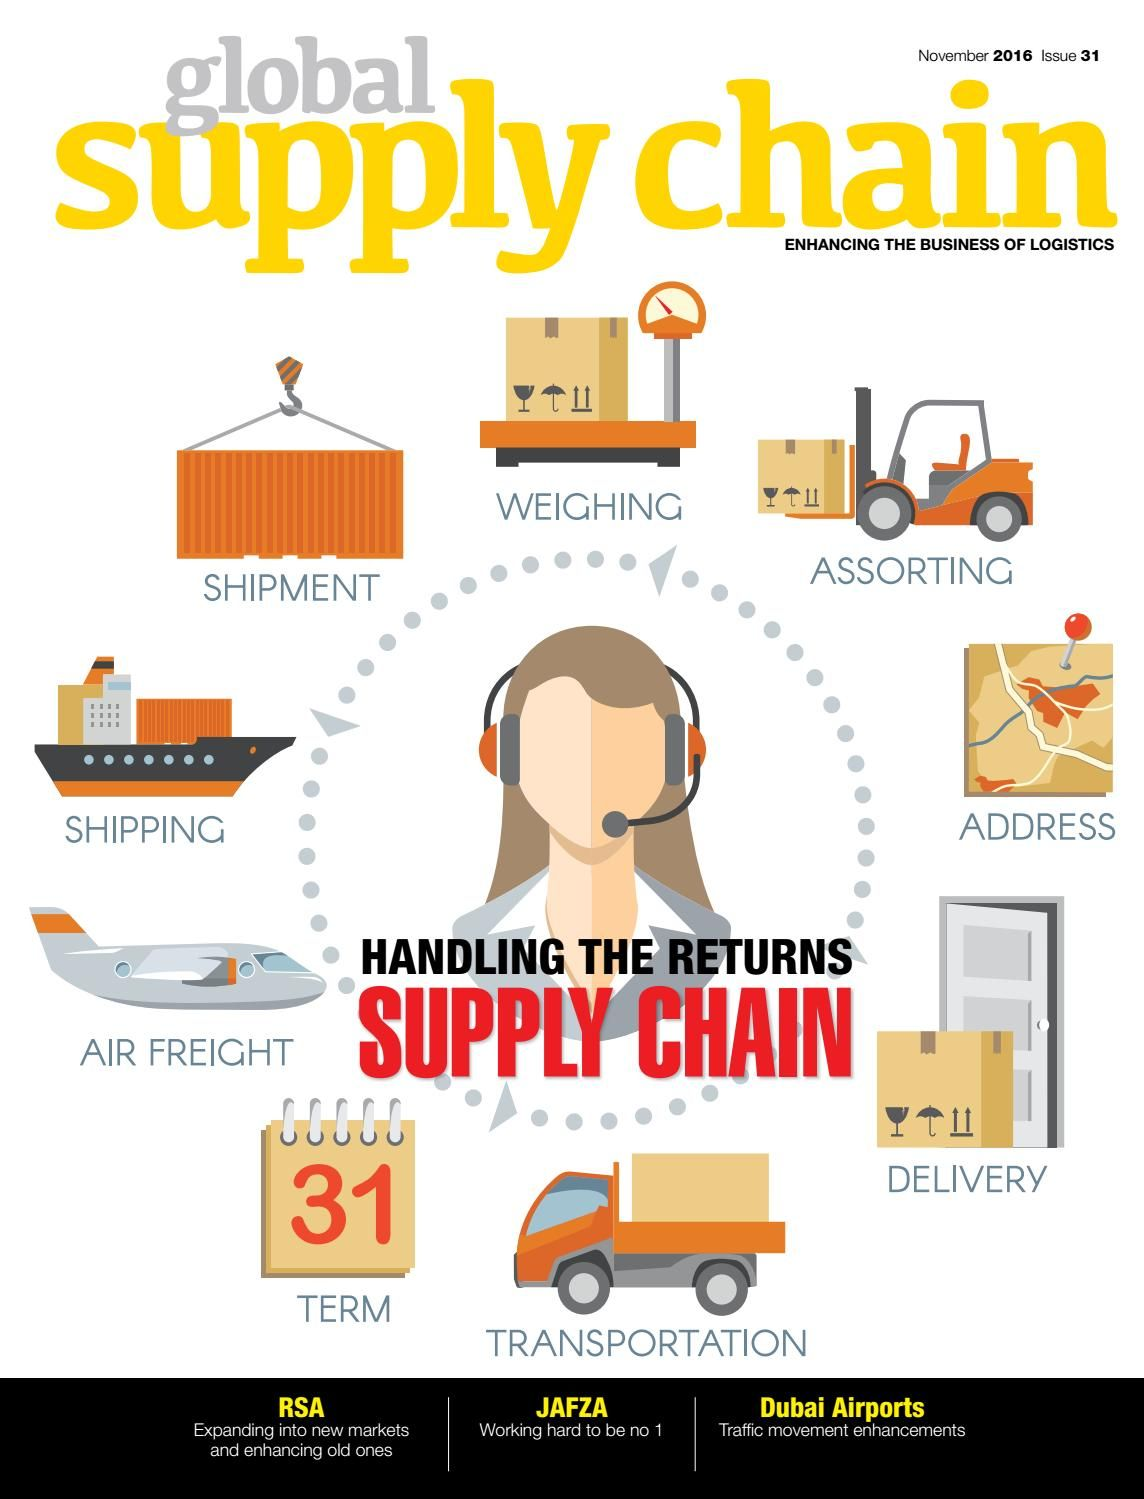 Global Supply Chain November 2016 Issue | Warehouse, Management and ...